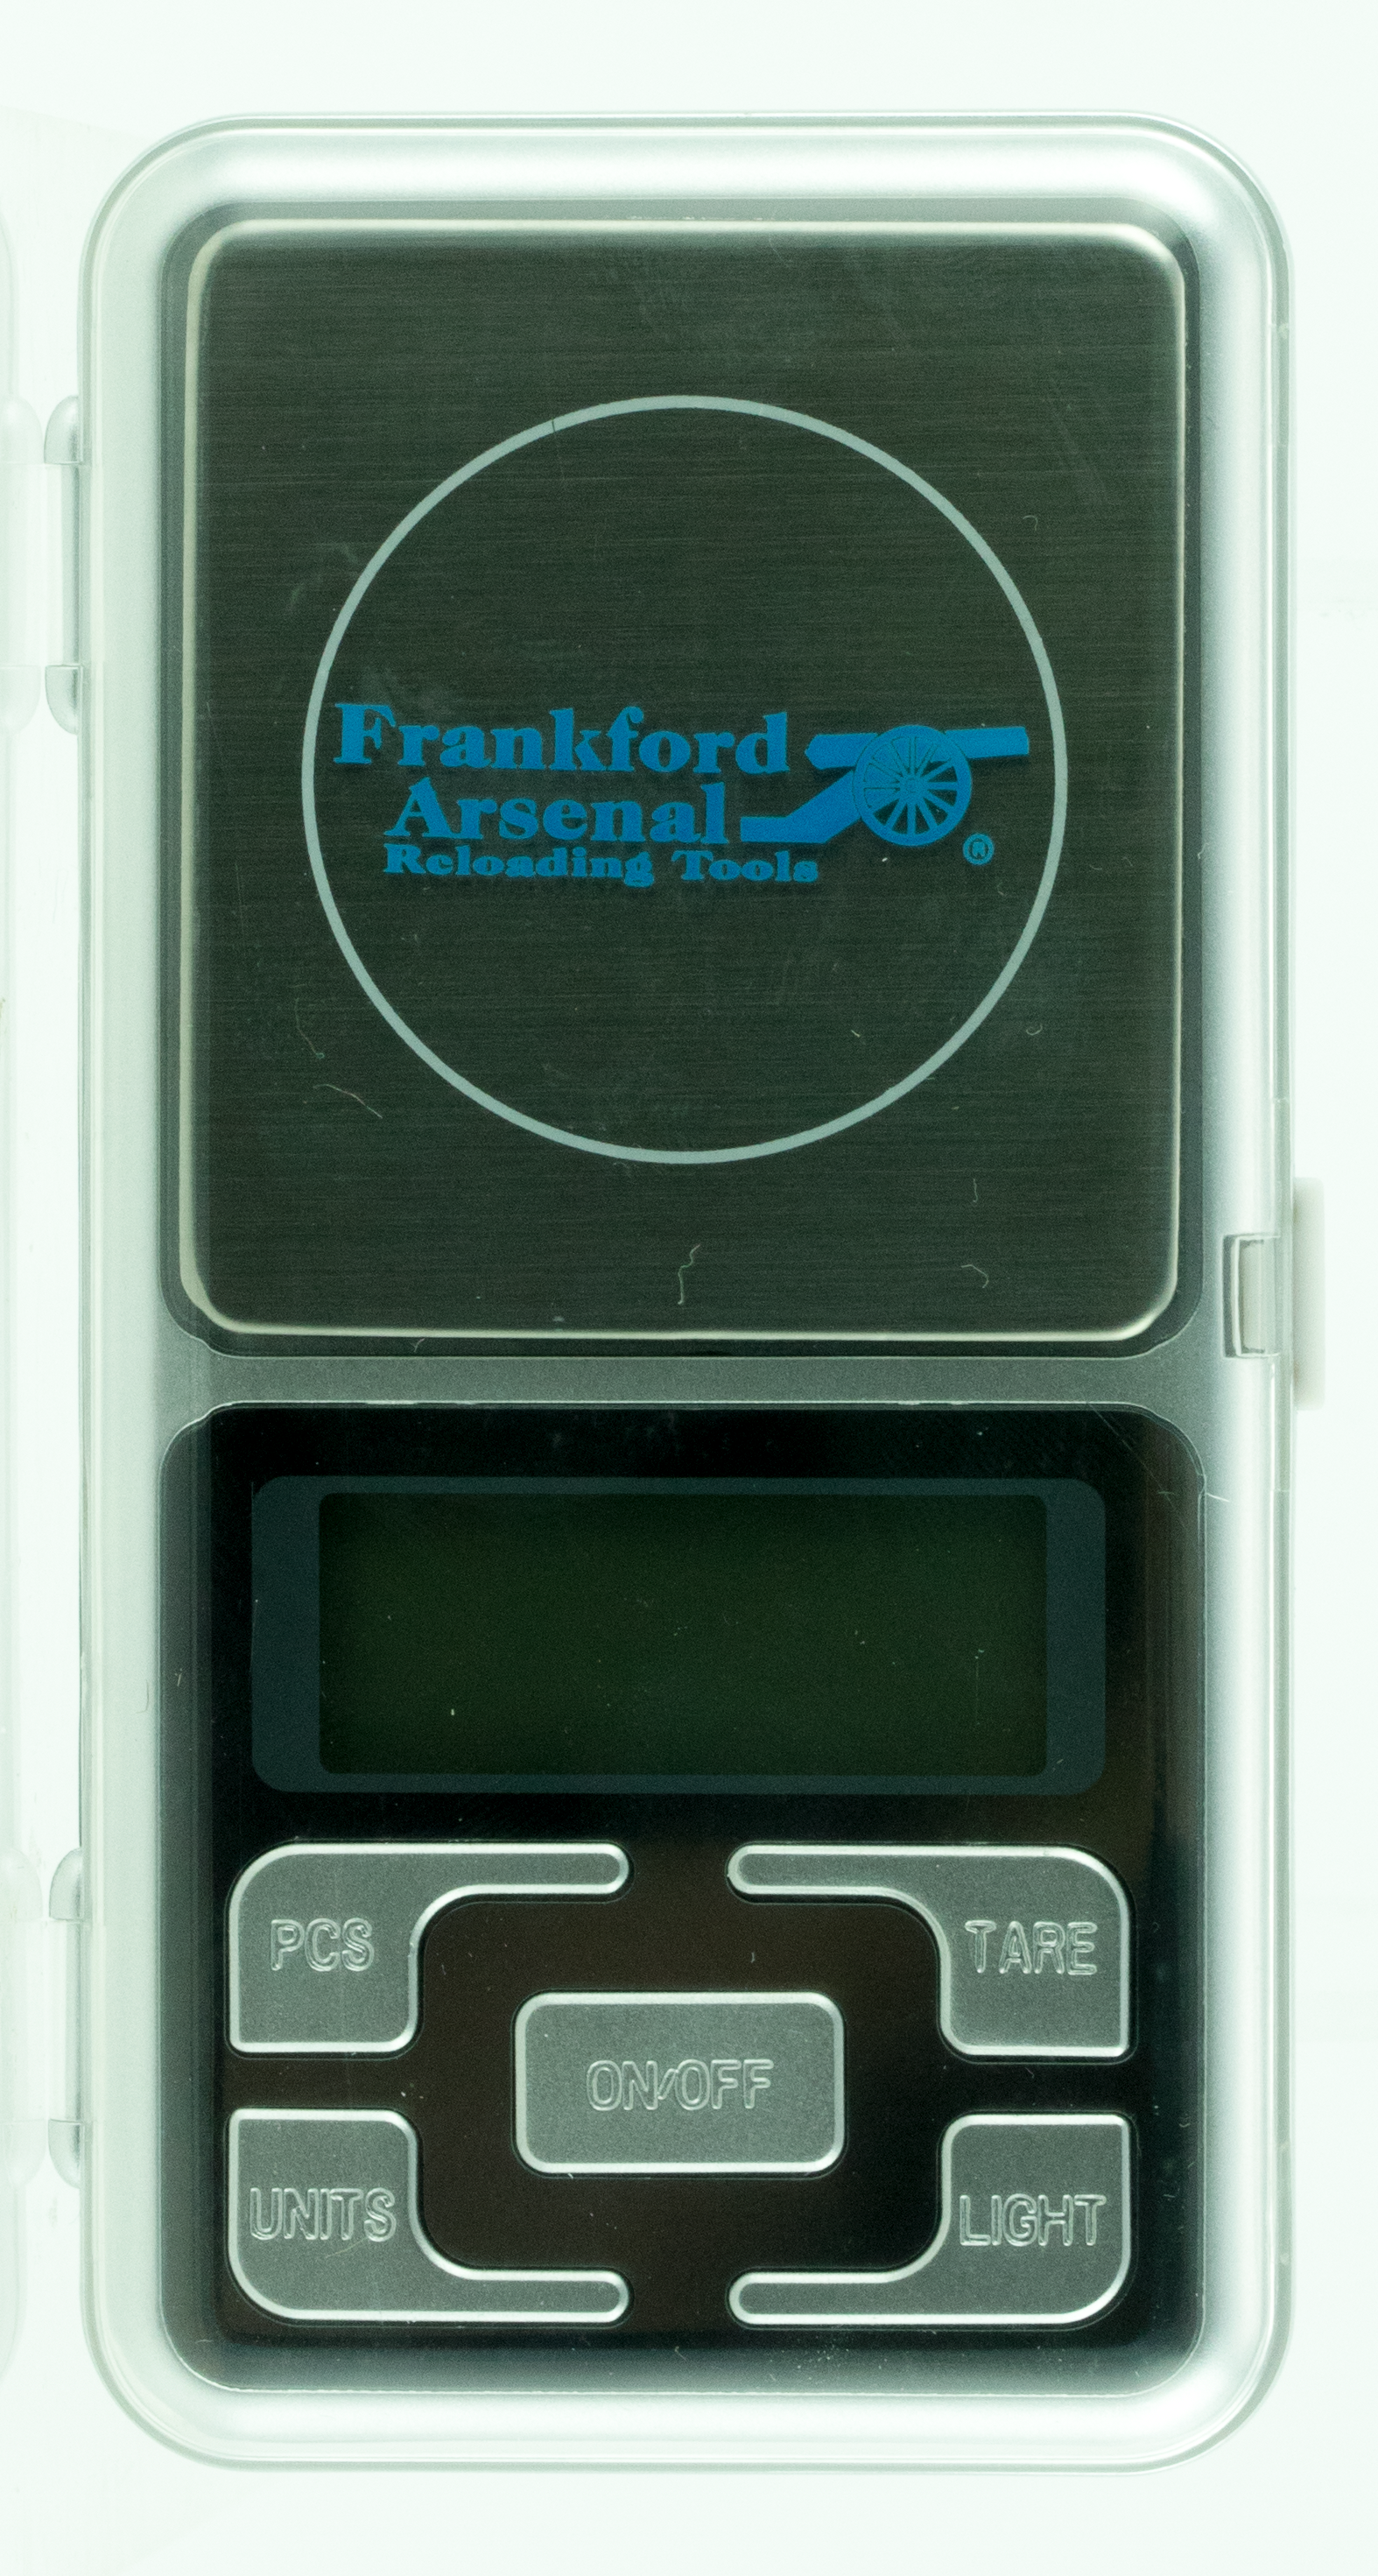 Frankford Arsenal 205205 Digital Scale LCD Display AAA (2)